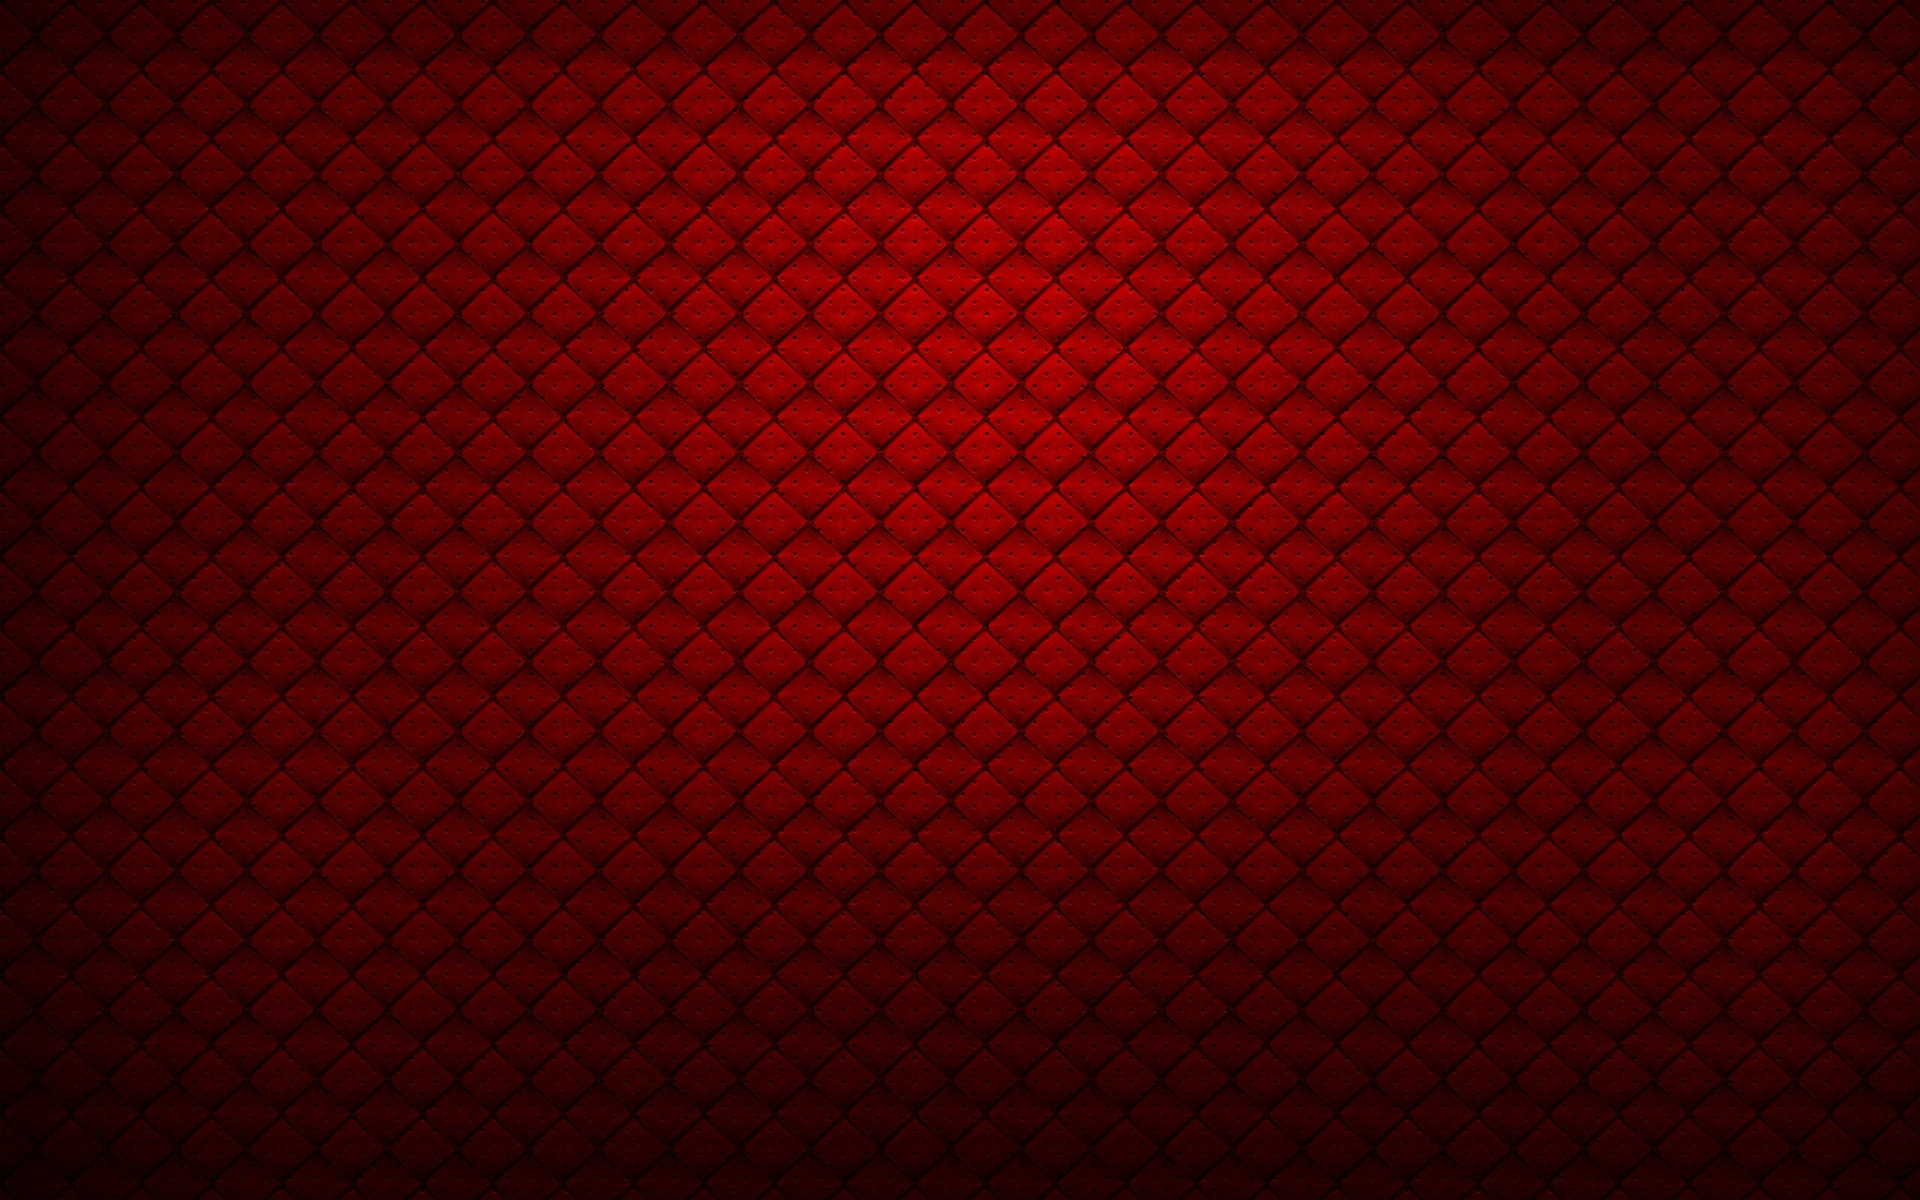 Red Wallpaper 397 Wallpapers Images